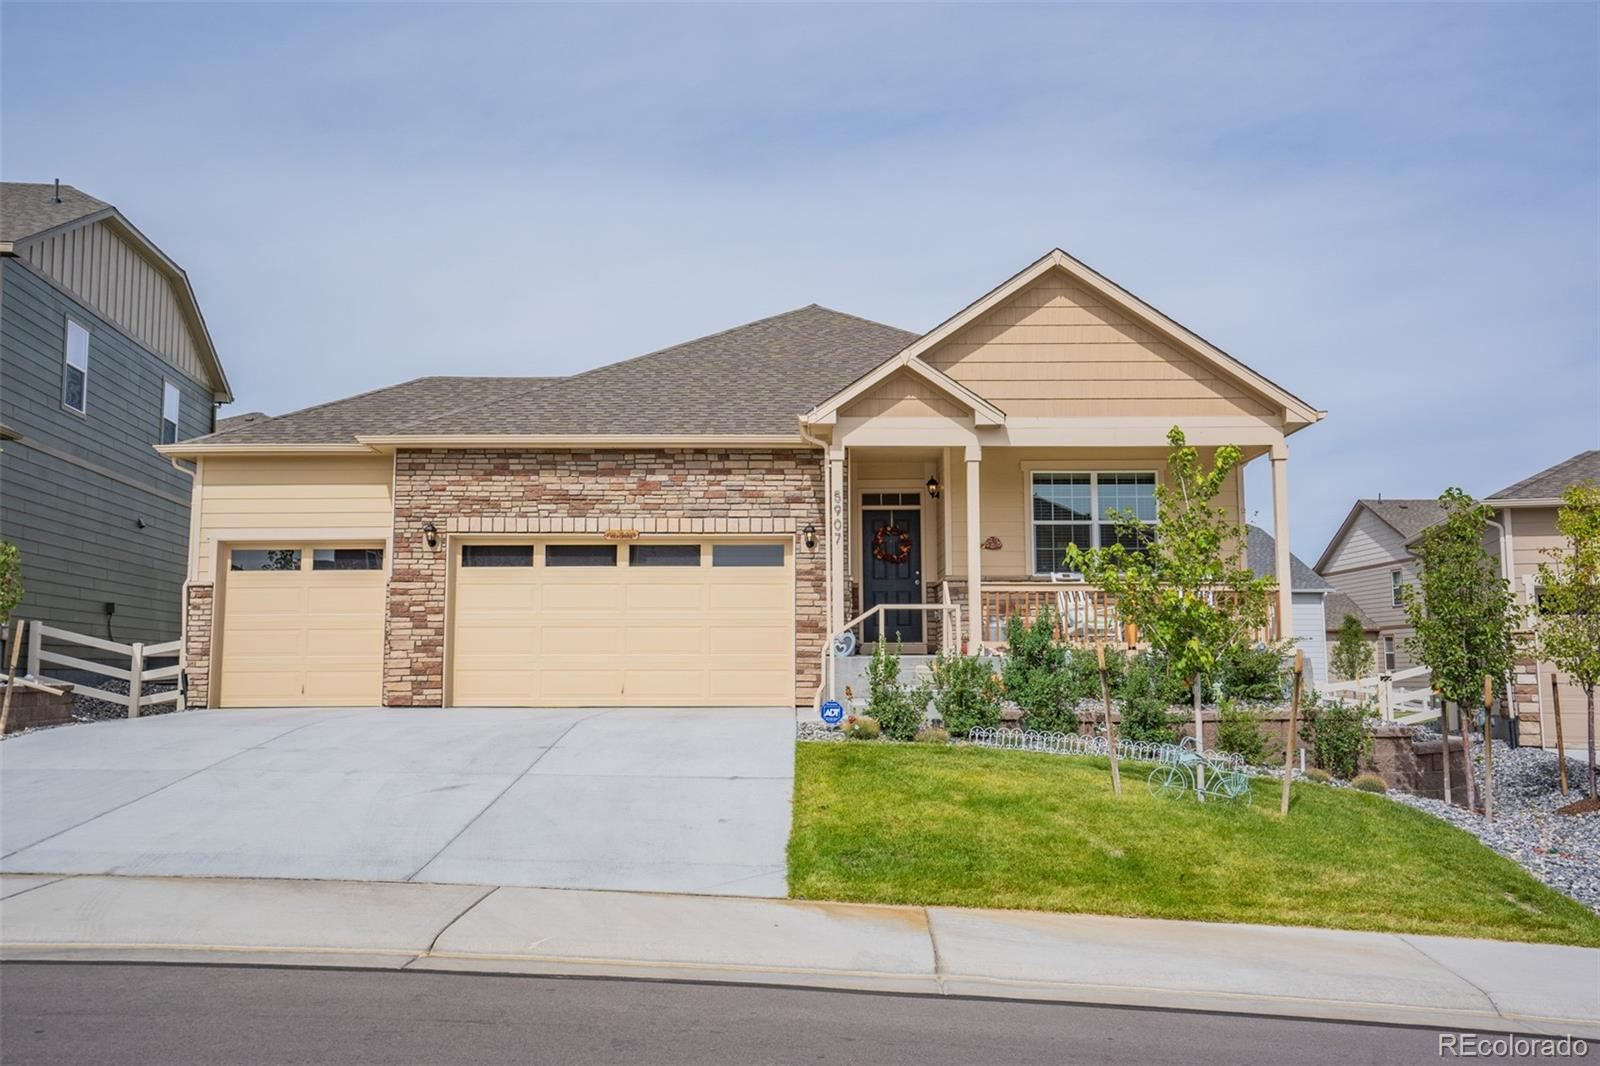 5907 Point Rider Circle, Castle Rock, CO 80104 - #: 2477297